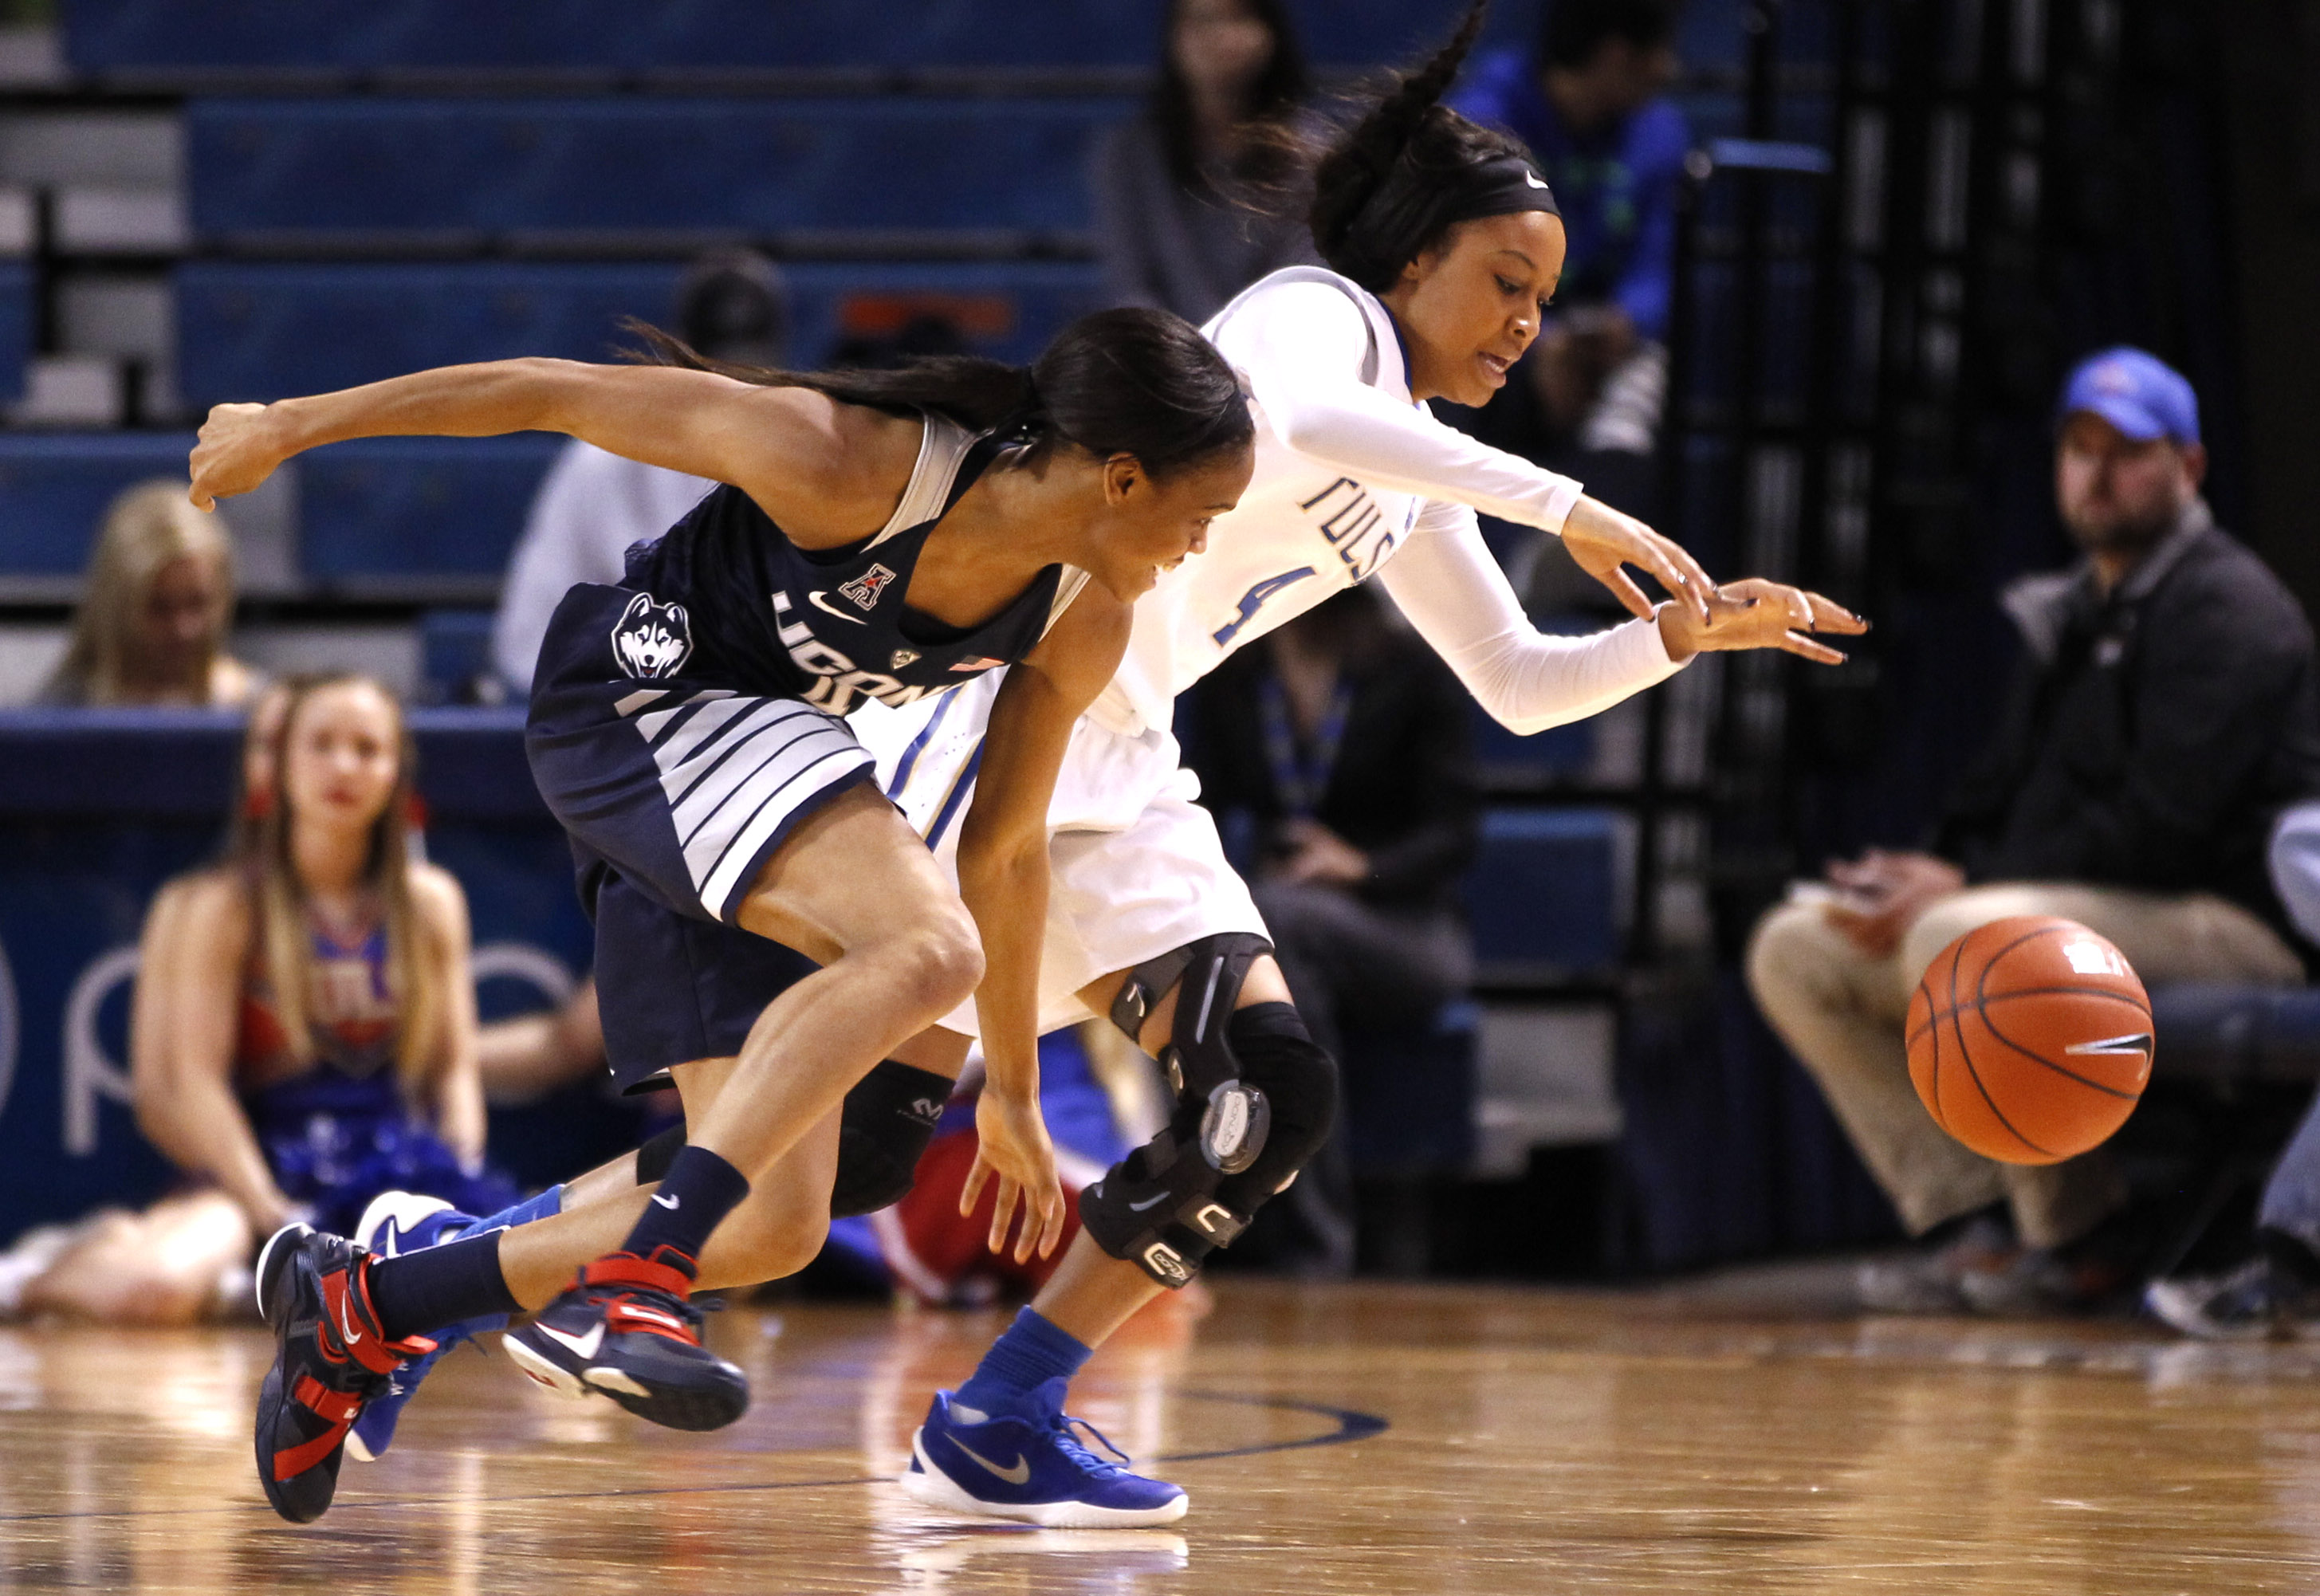 Connecticut's Moriah Hefferson and Tulsa's Teanna Reid chase a loose ball in the first half of an NCAA college basketball game in Tulsa, Okla., Wednesday, Jan. 27, 2016. (AP Photo/Dave Crenshaw)